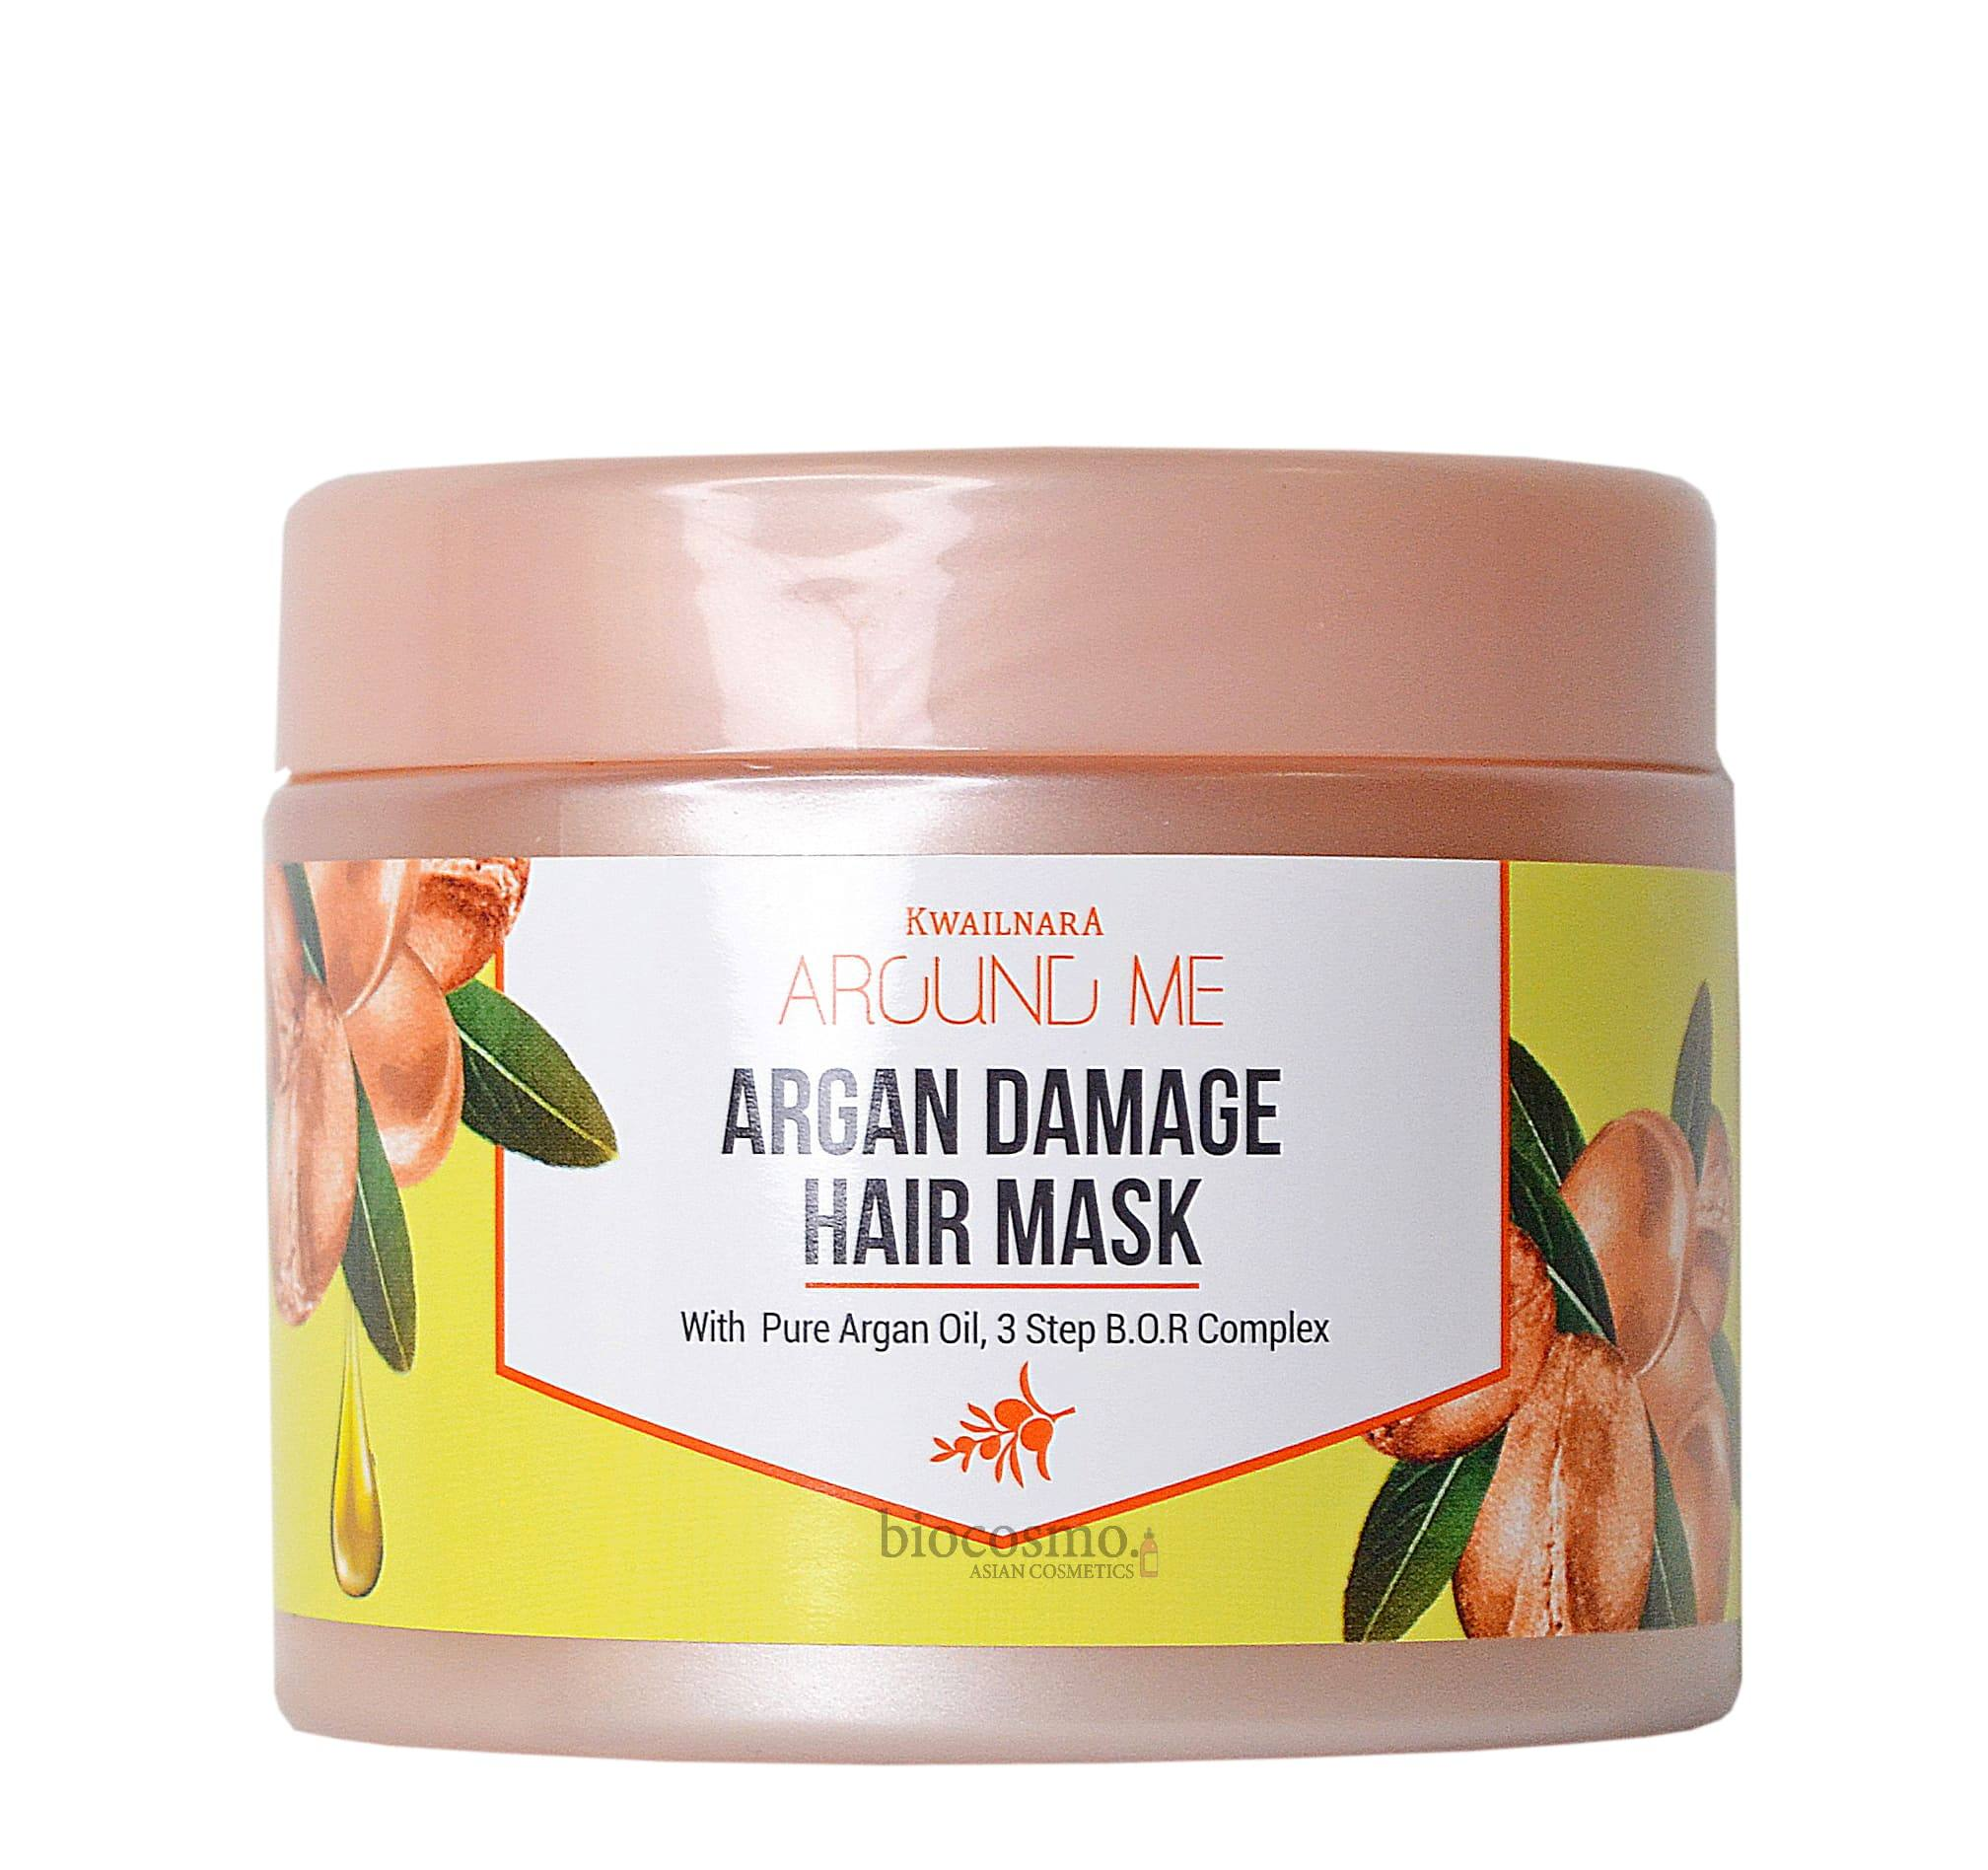 maska-dlja-volos-welcos-kwailnara-around-me-argan-damage-hair-mask-kupit-v-minske